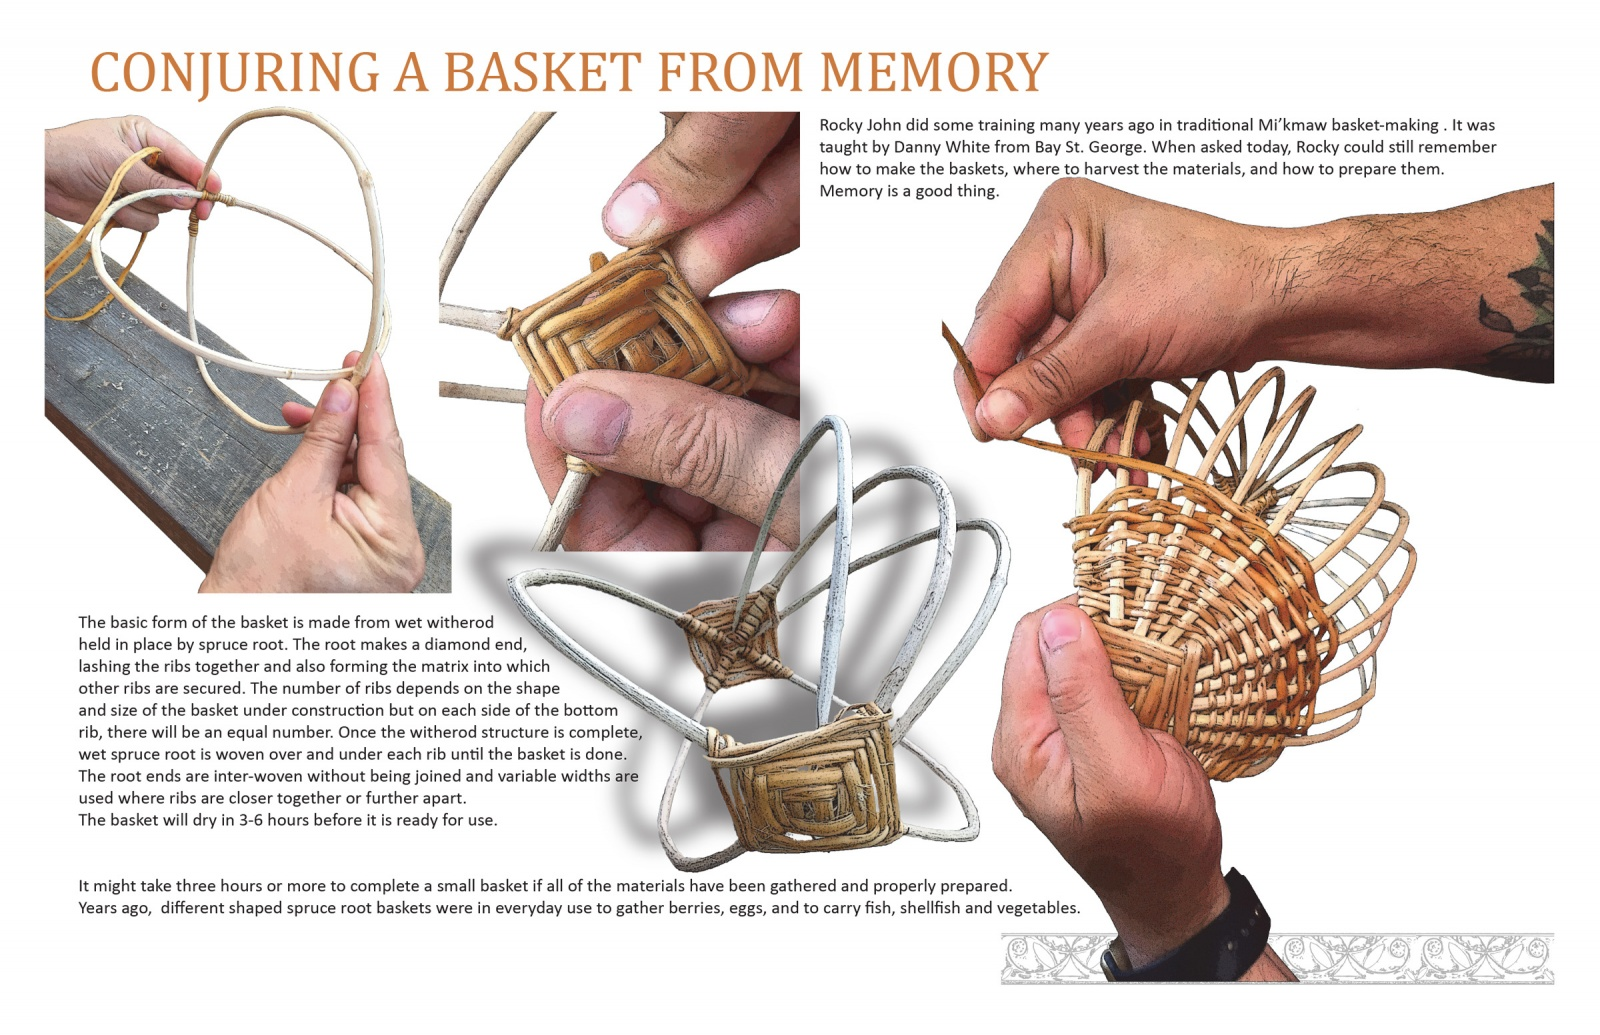 Conjuring a Basket From Memory